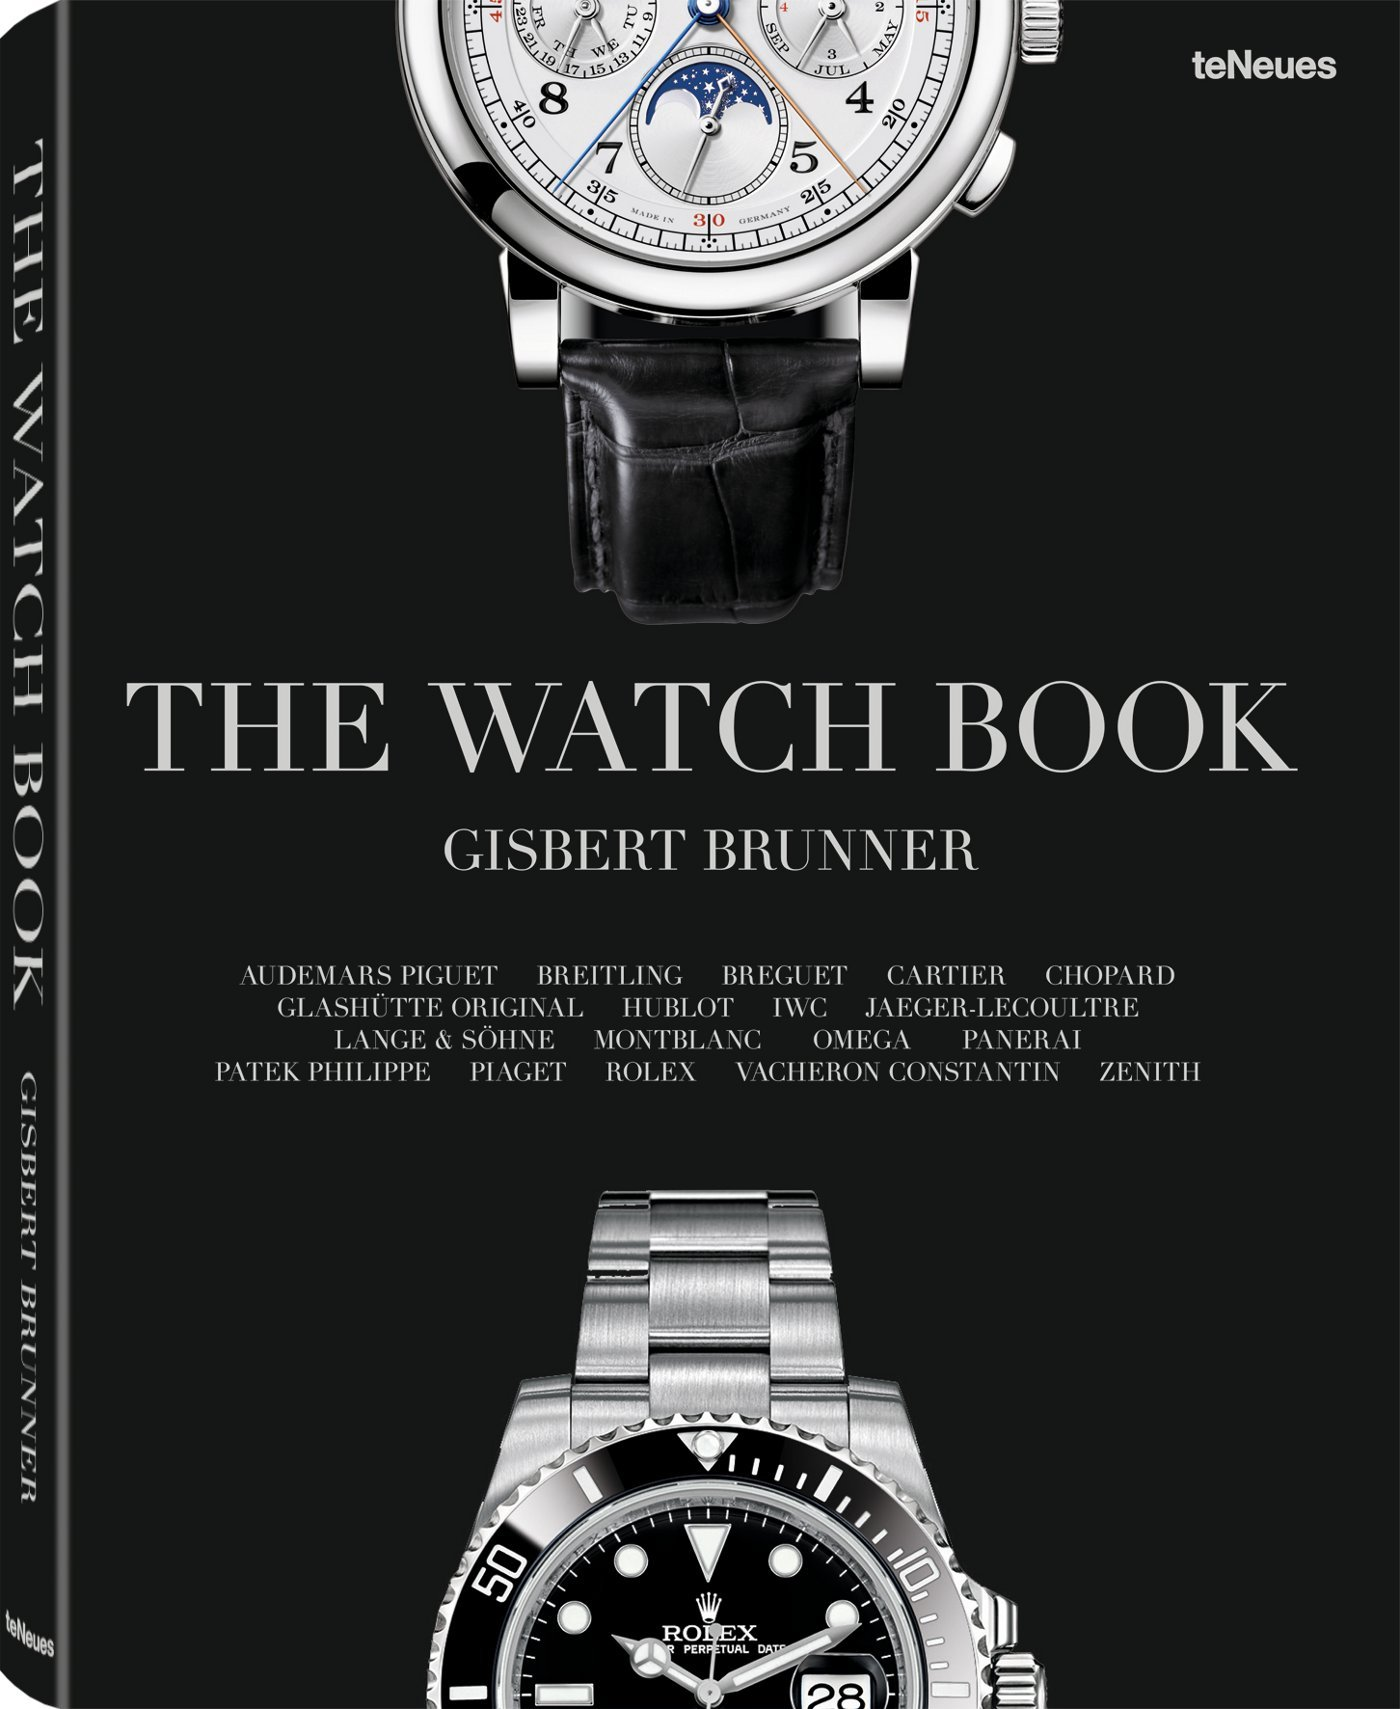 THE ULTIMATE WATCH BOOK